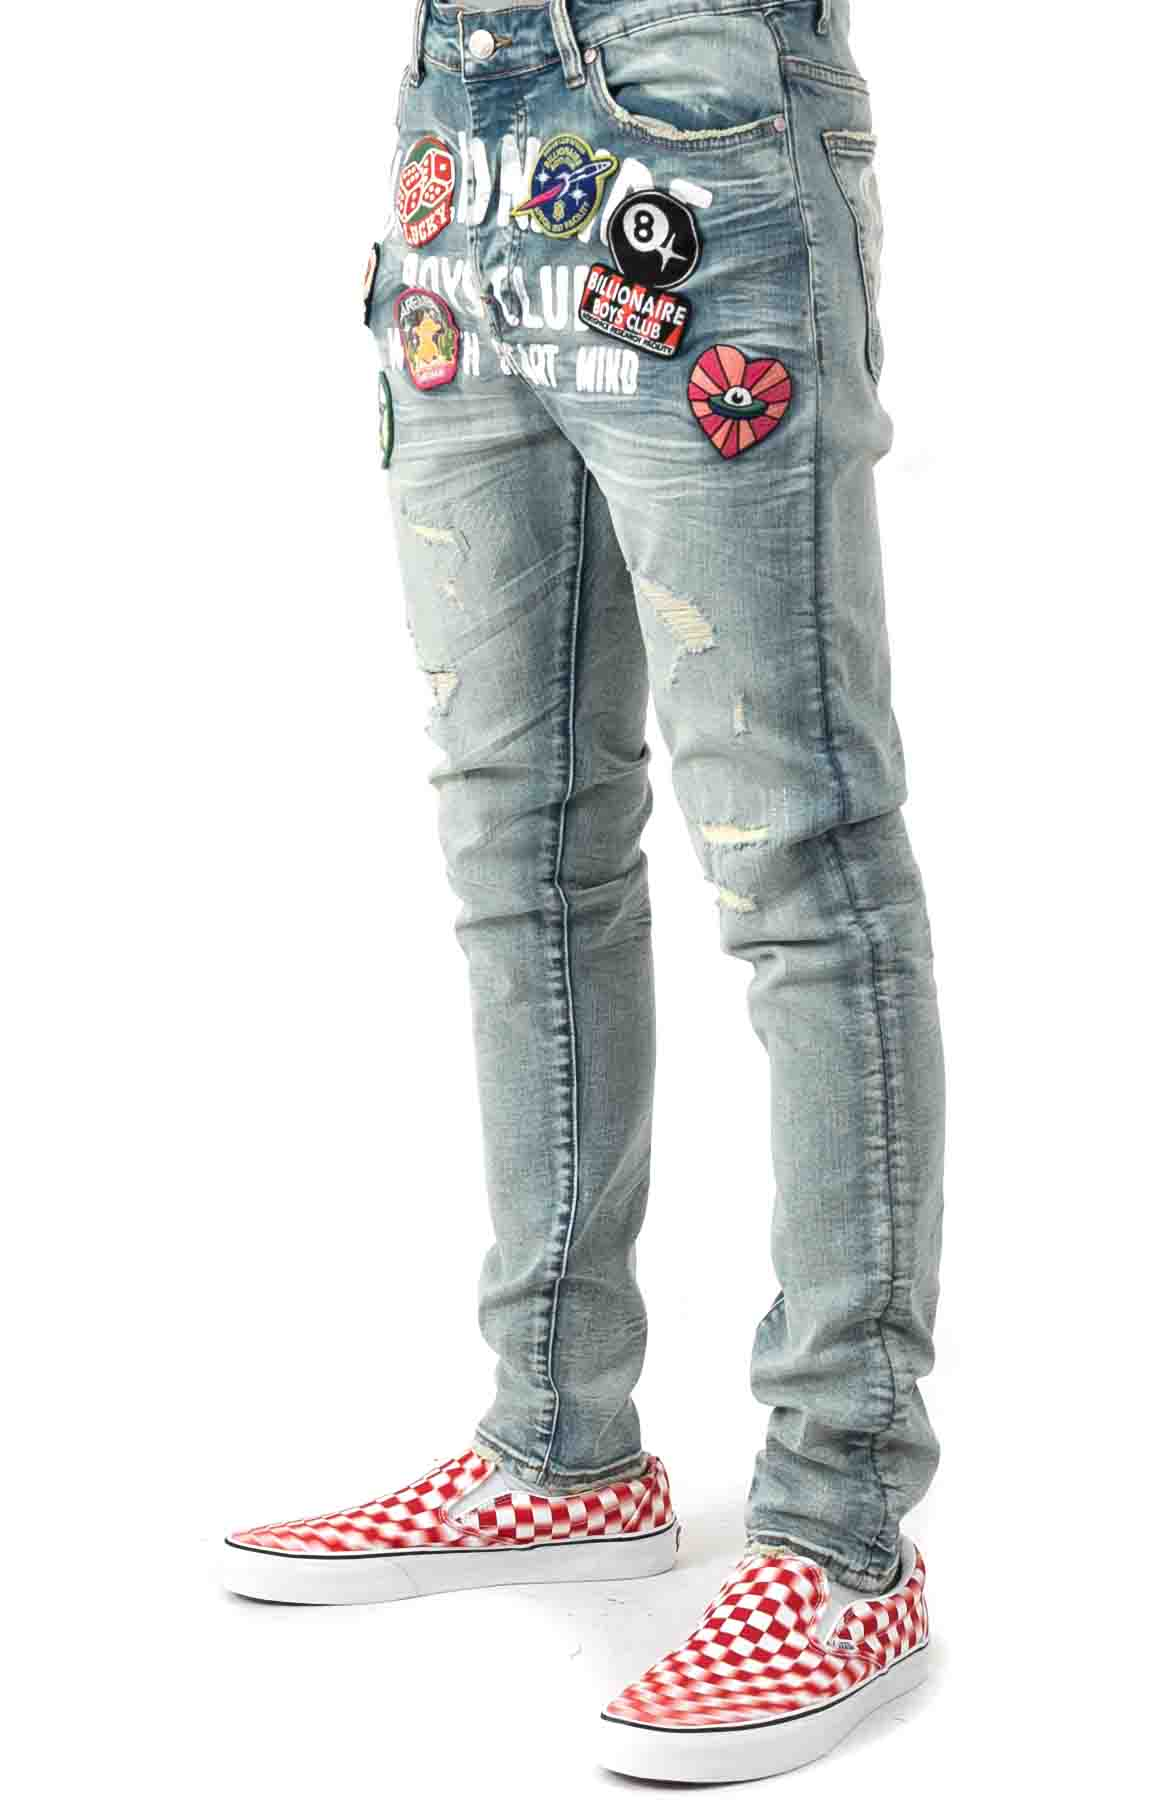 BB Lucky Jeans - Axis